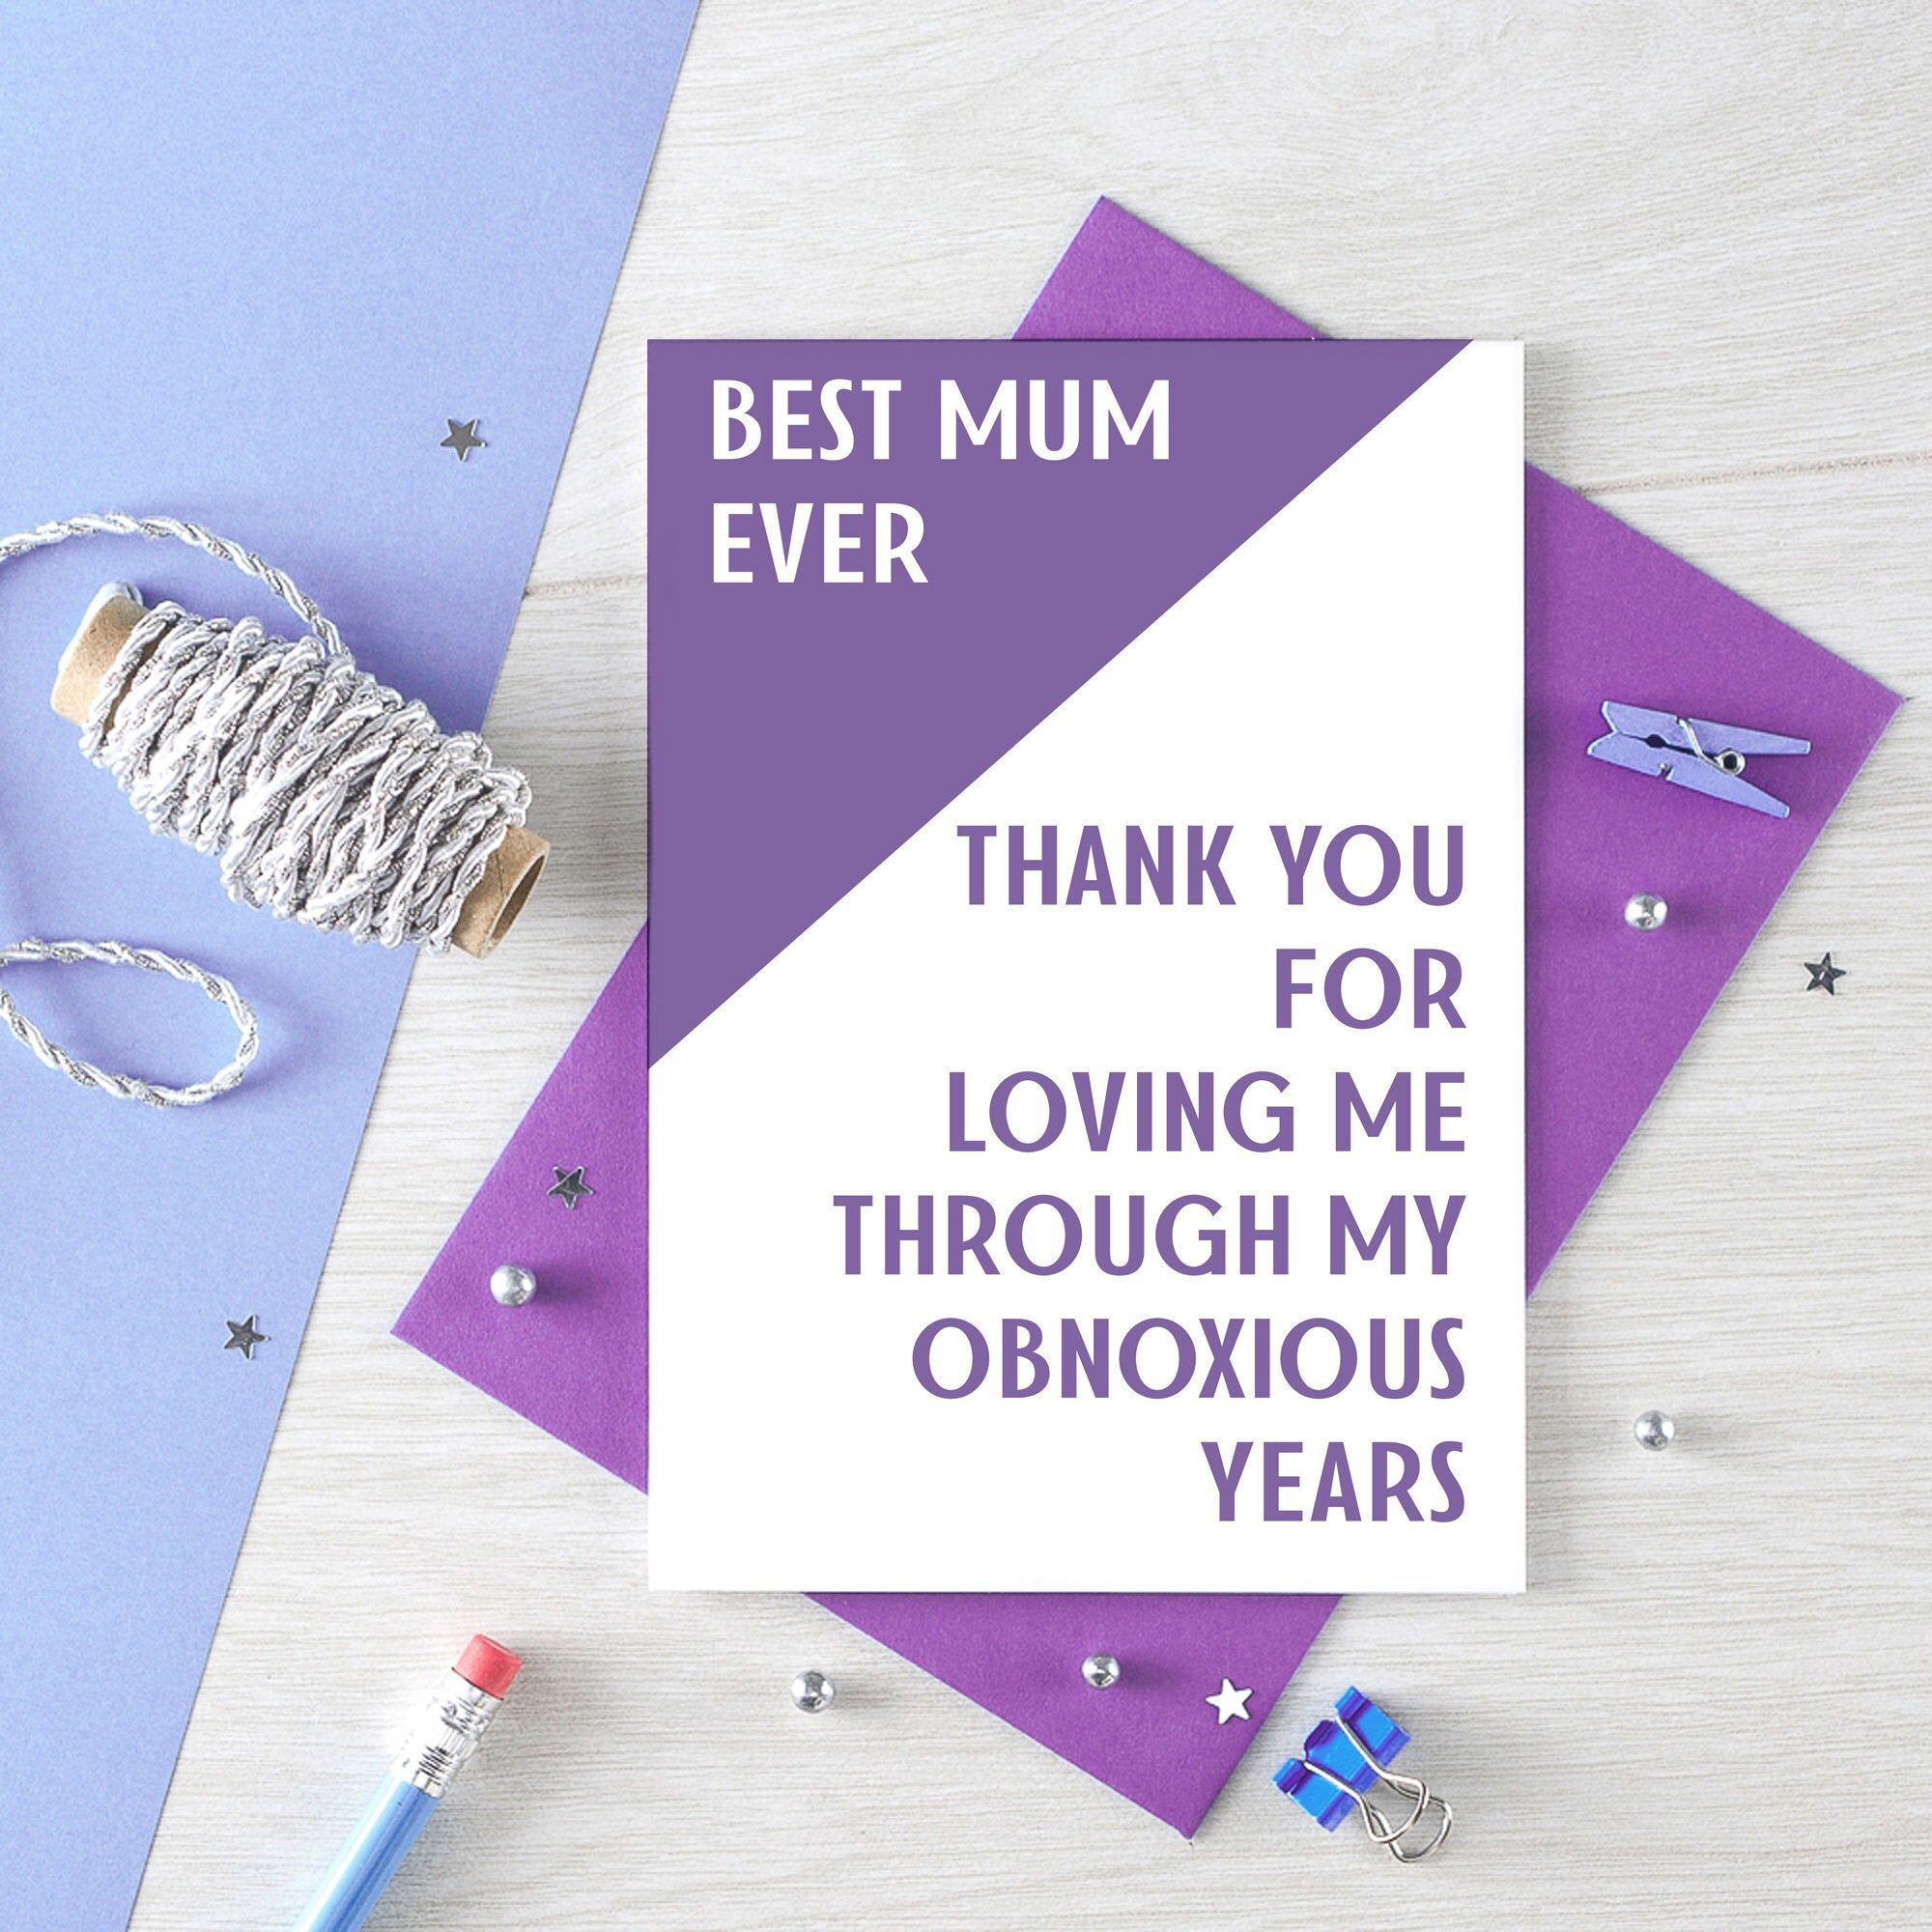 Funny Birthday Card For Mum Funny Mum Card Best Mum Ever Mum Birthdaycard Mothers Funny Birthday Cards Birthday Cards For Friends Happy Birthday For Her